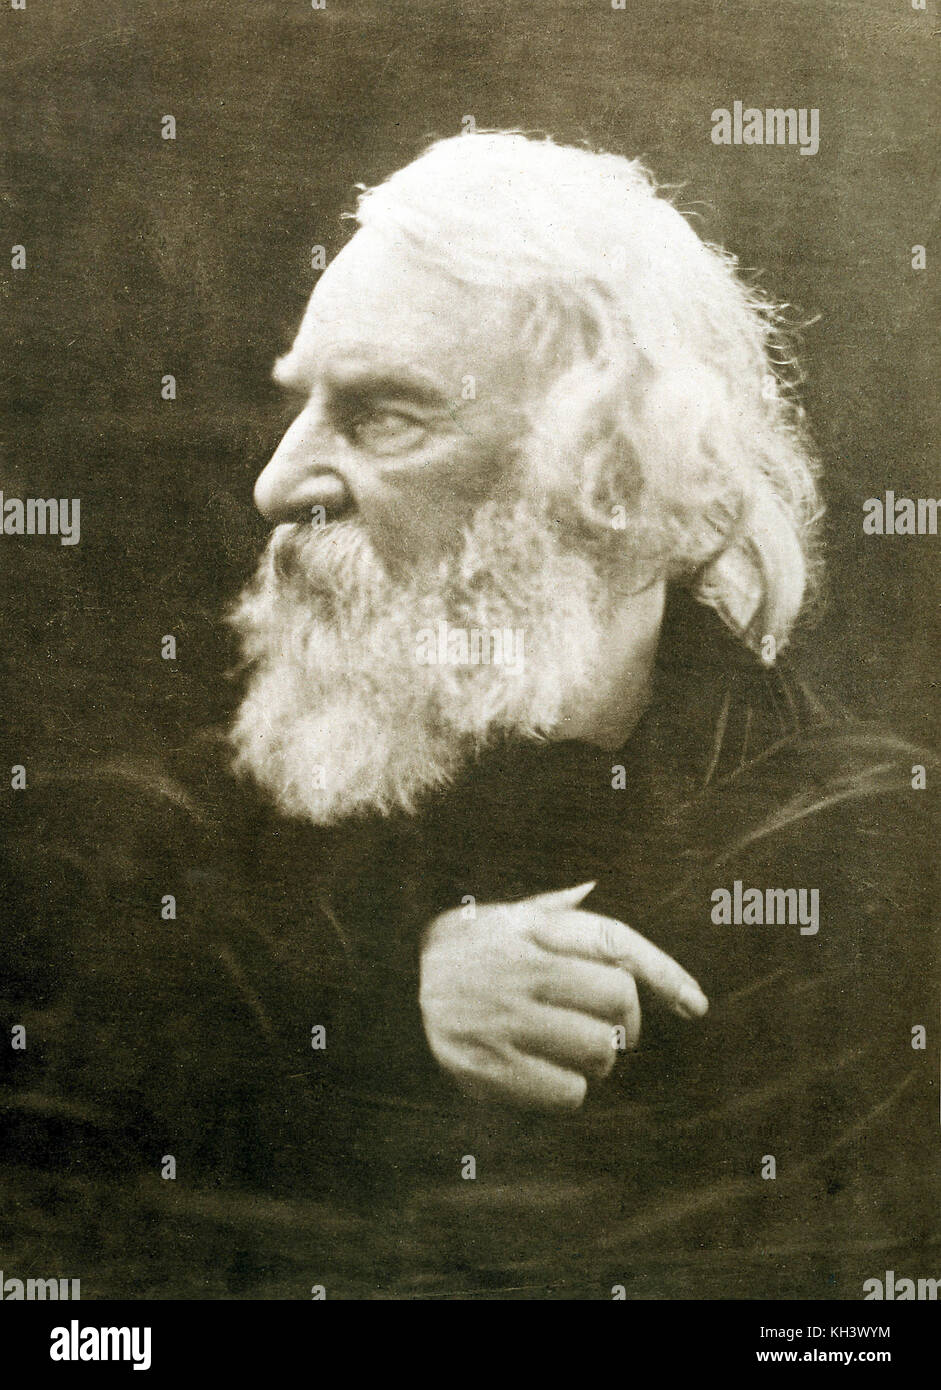 henry wadsworth longfellow an american writing One who deals with the life and works of henry wadsworth longfellow (1807   he was one of the first american writers who wrote about native themes (e g.